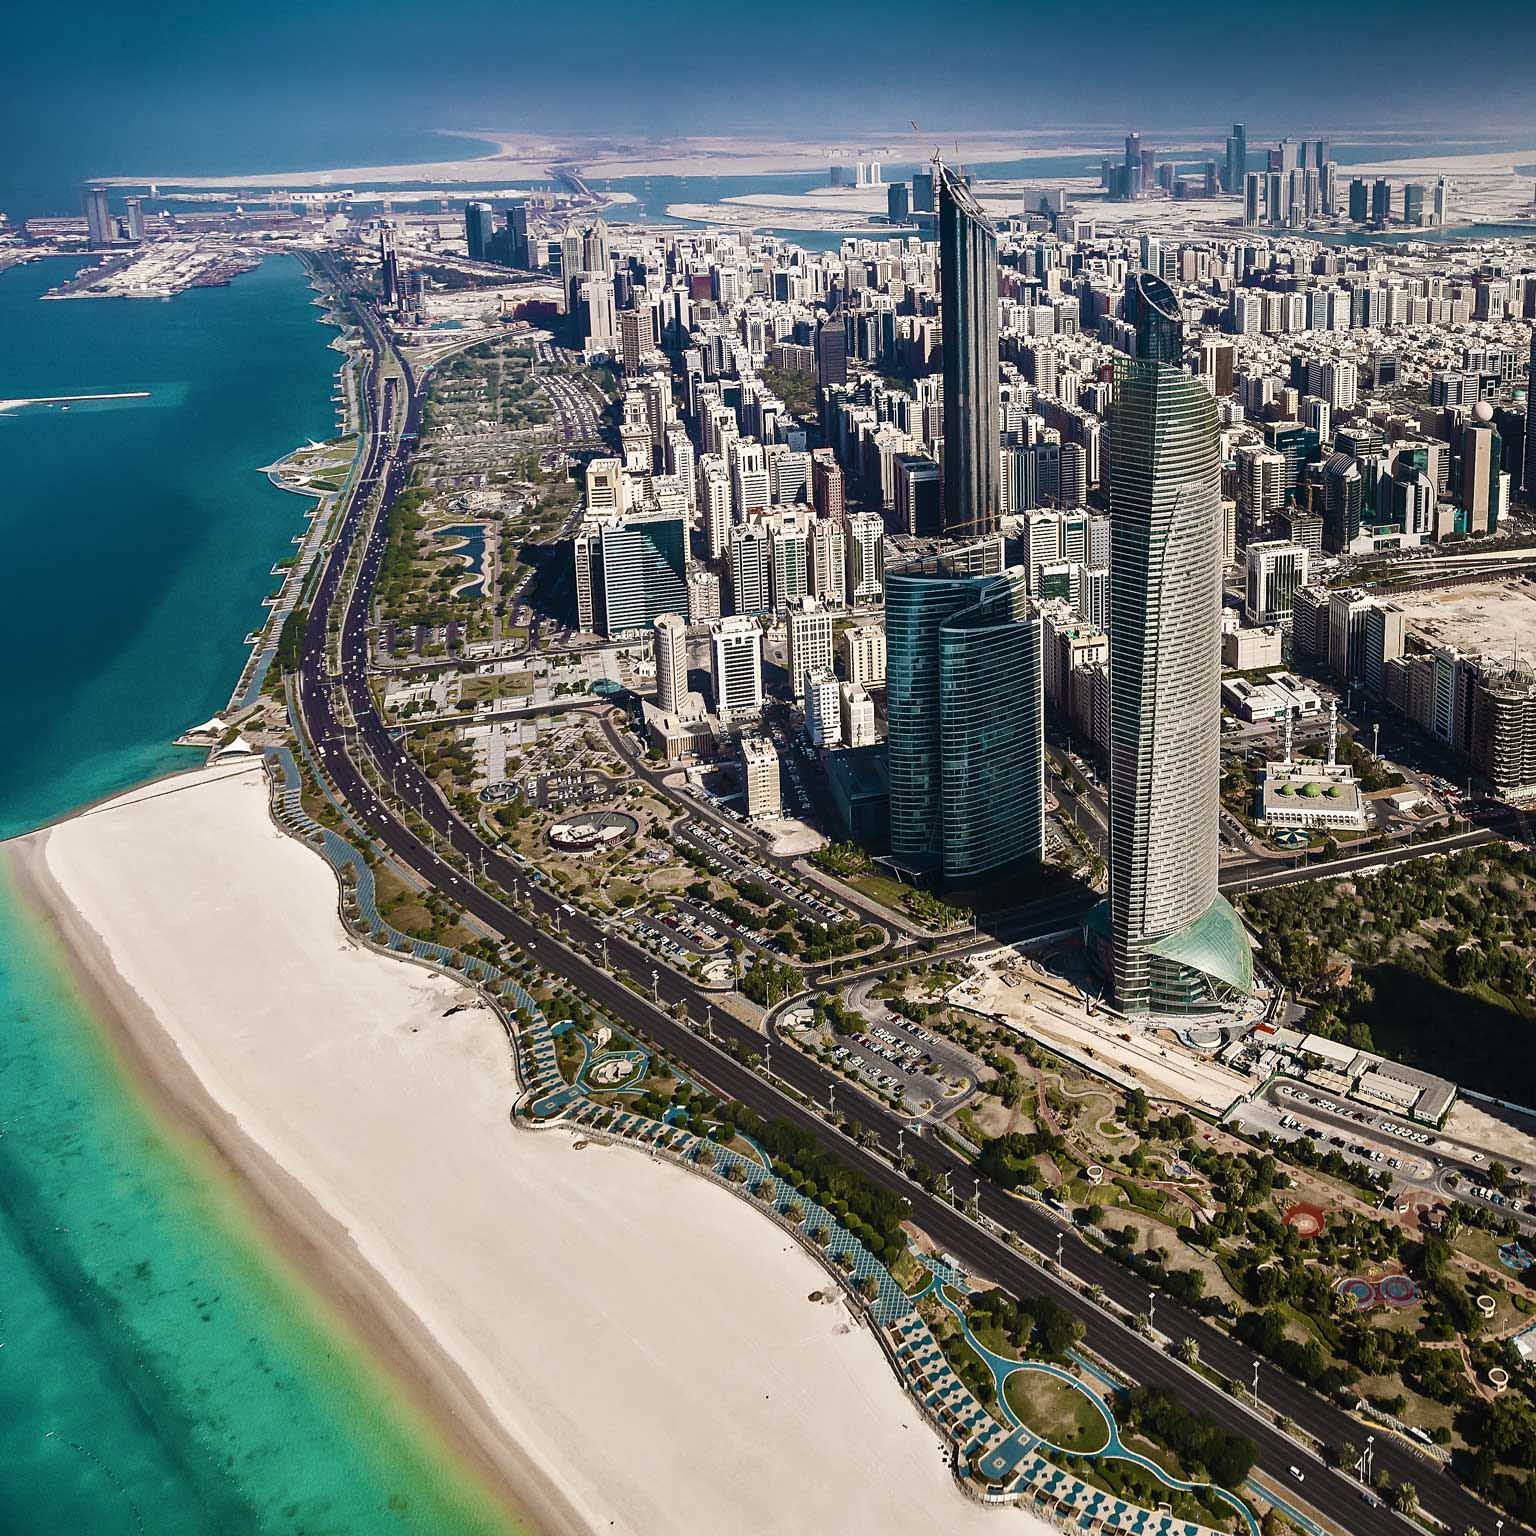 In Abu Dhabi, is there prosperity to be found beyond oil